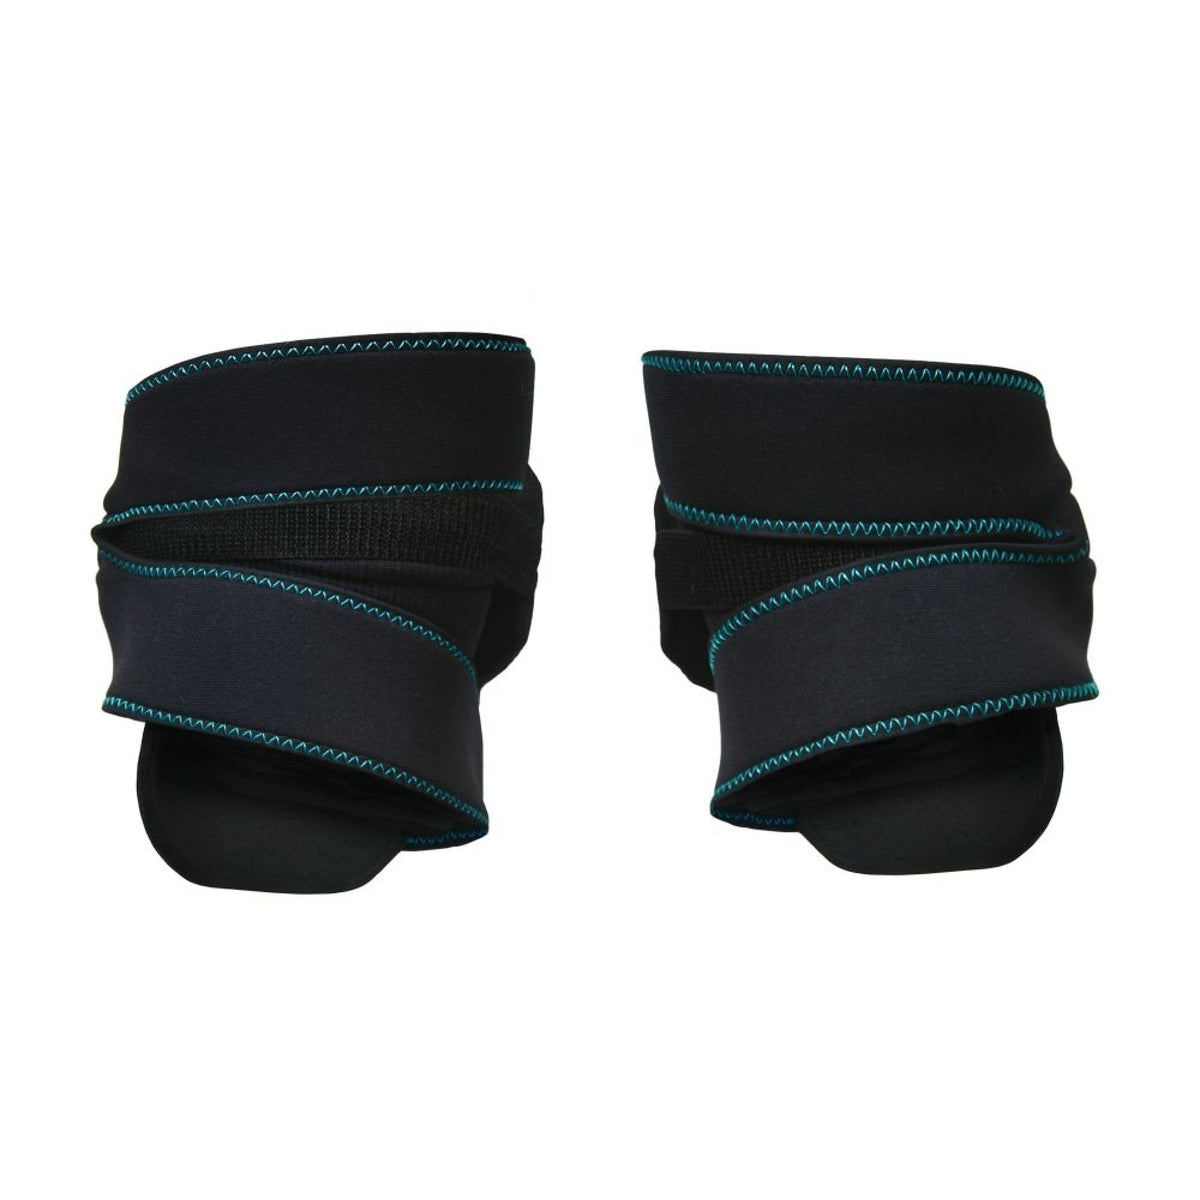 PC Knee Protector - BeesKnees